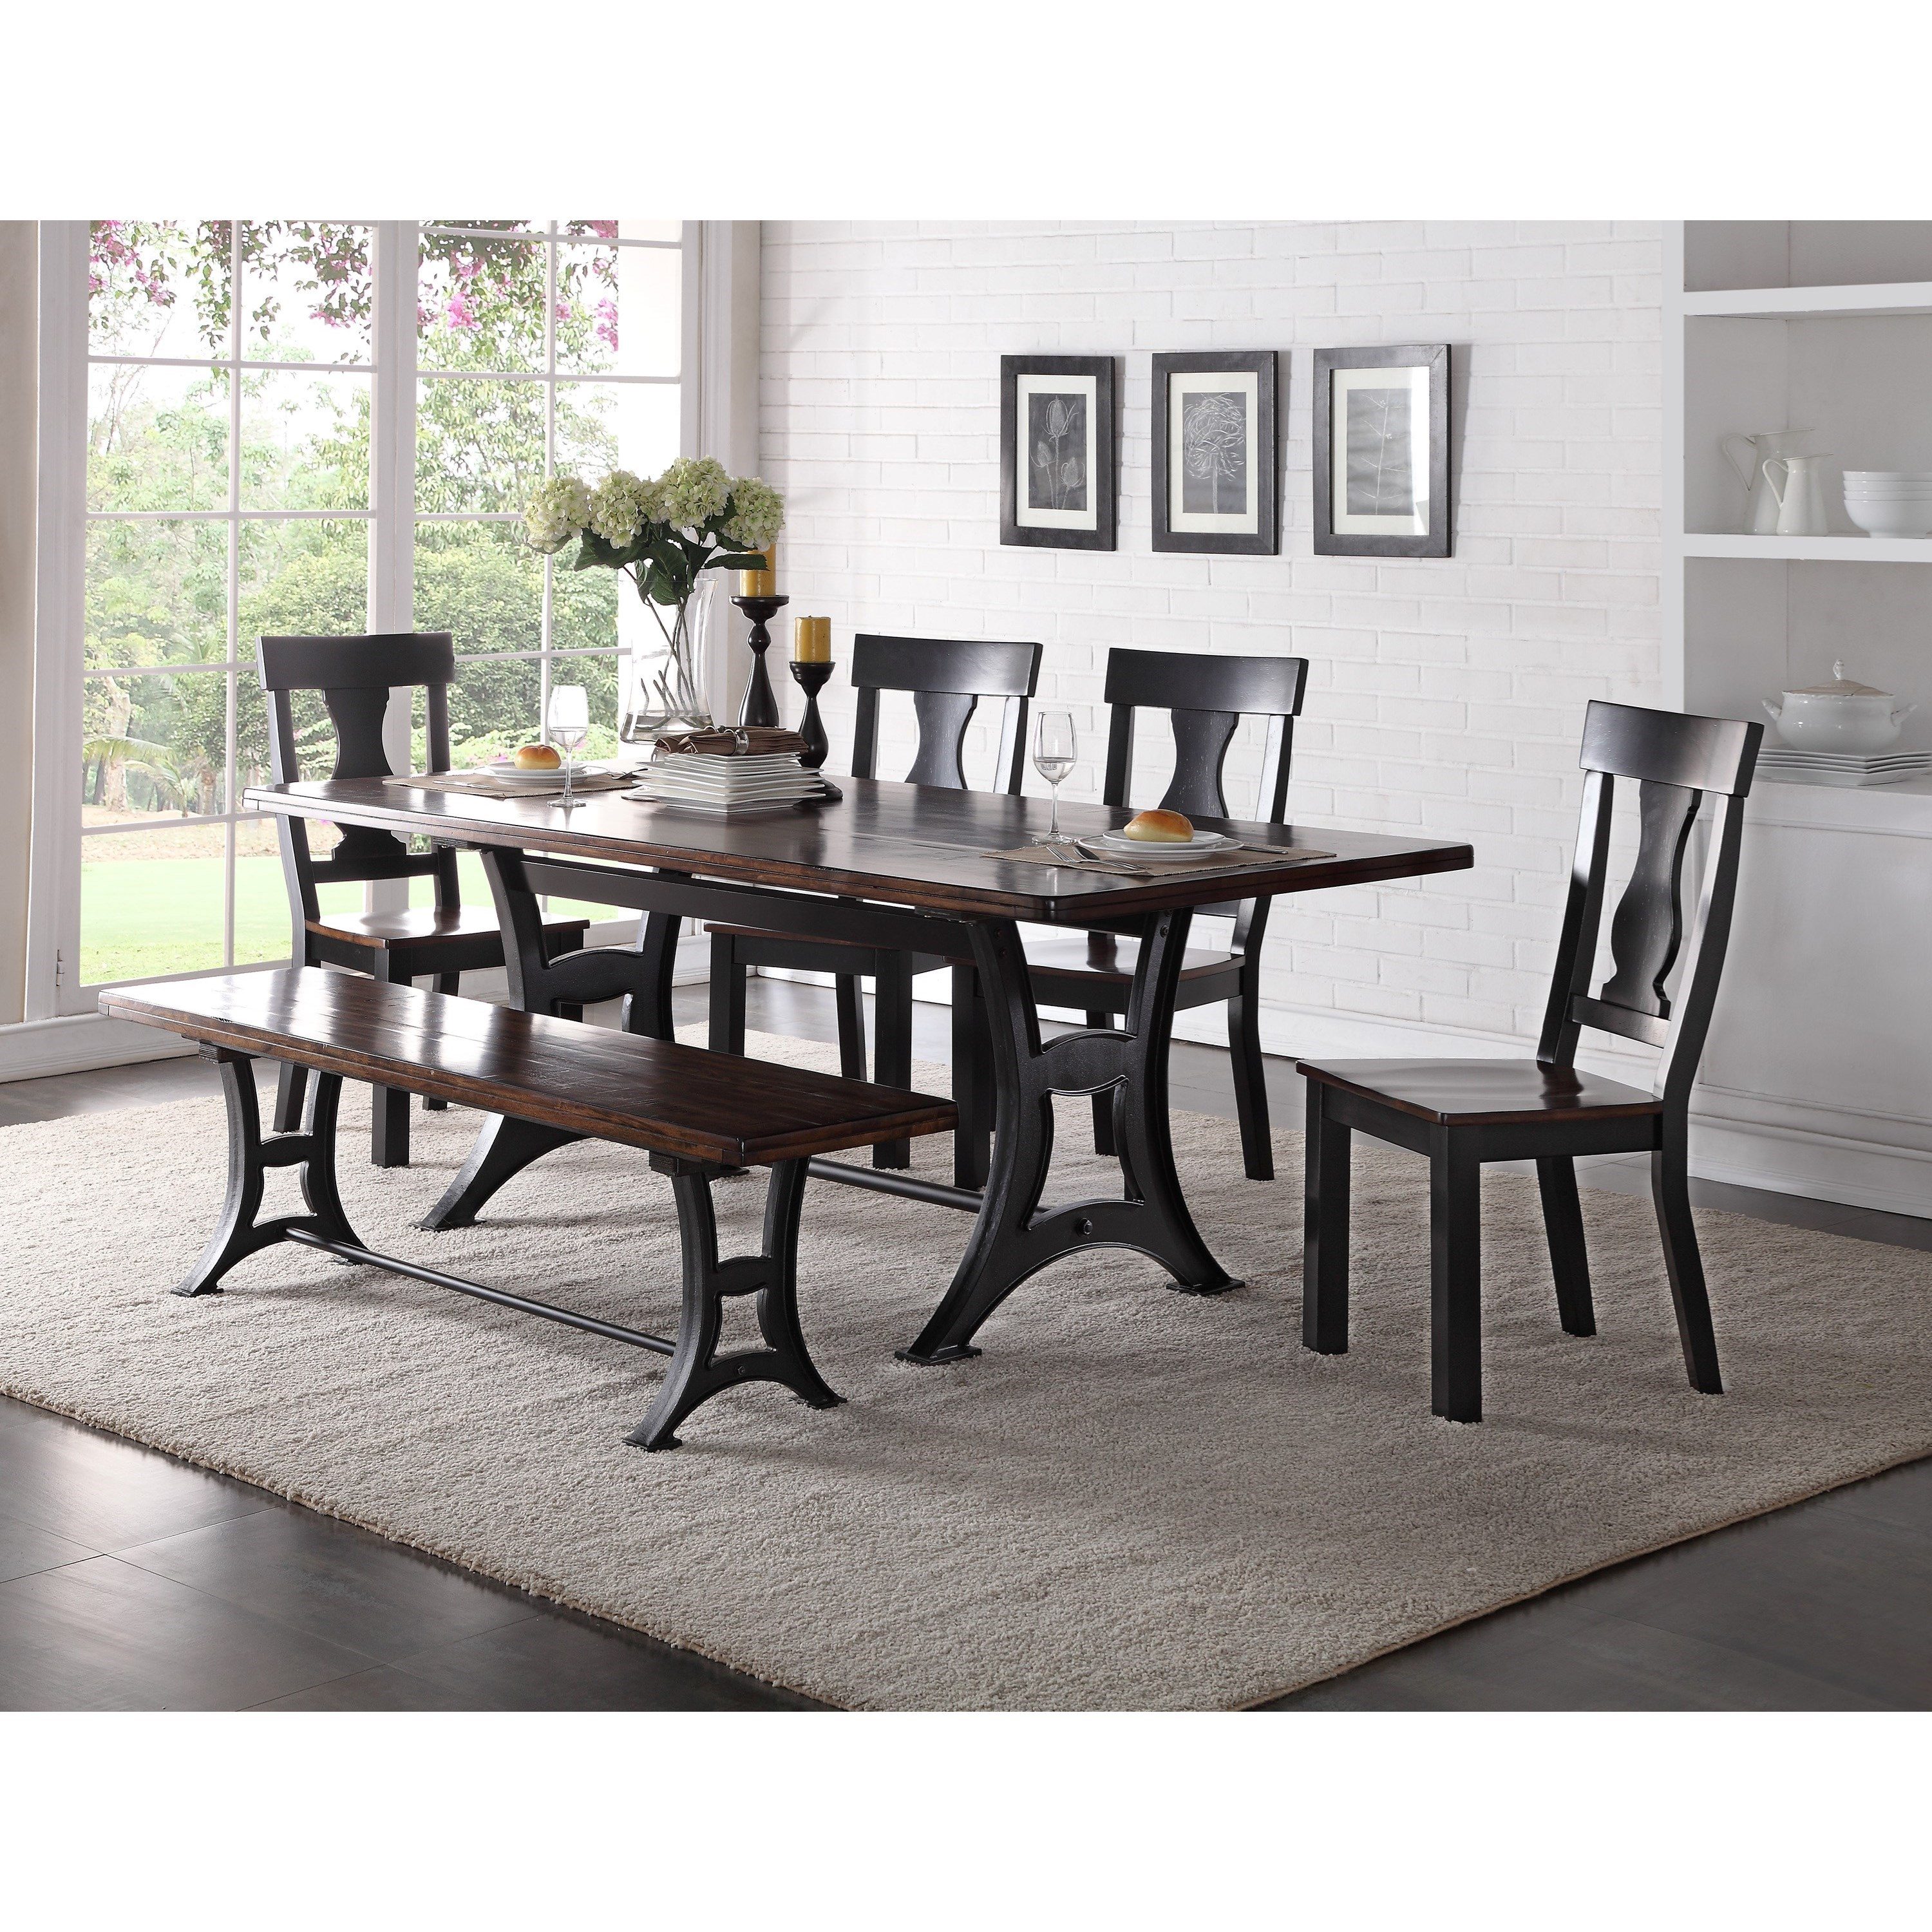 Crown mark astor mixed style dining set with bench dunk for Astor dining table